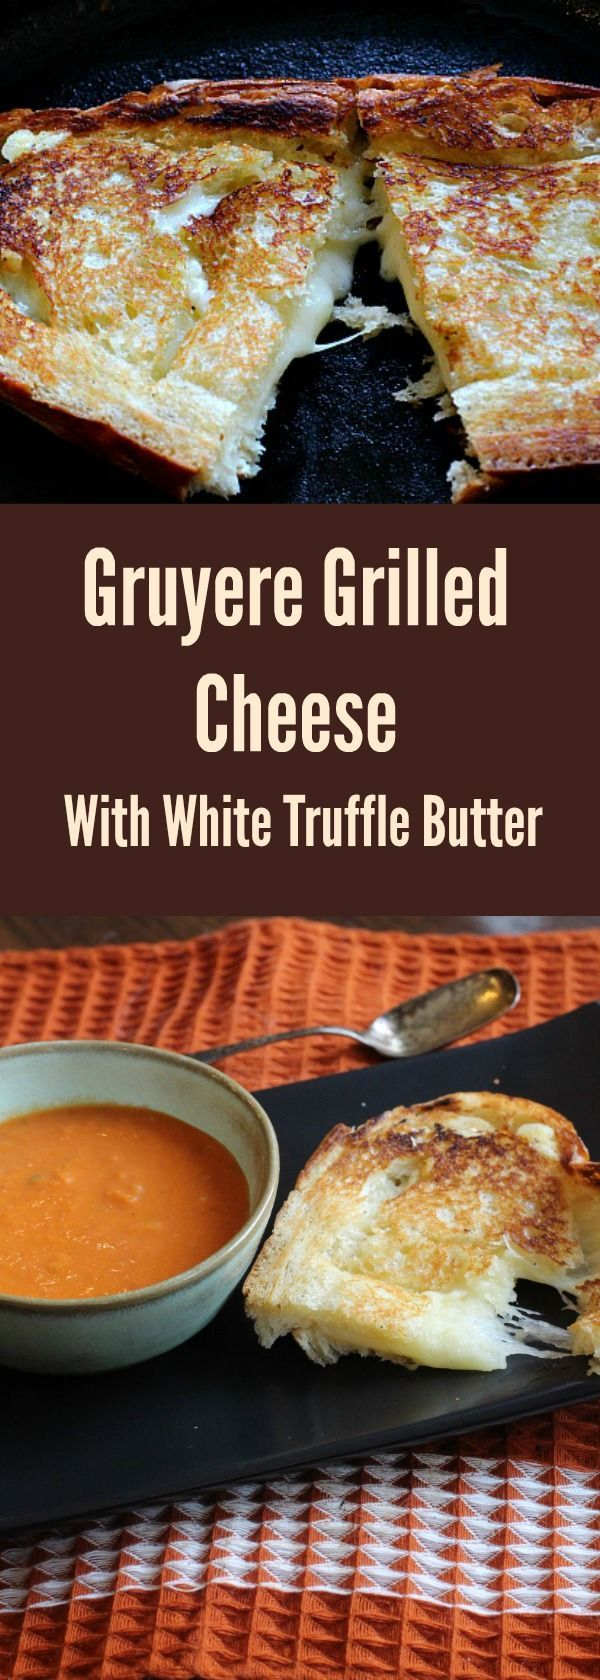 Fancy Schmancy Gourmet Grilled Cheese - This is seriously the best grilled cheese sandwich you will ever have! Brushed with White Truffle Butter and stuffed with gruyere cheese, this crispy and melty sandwich will be a household favorite! via @lannisam